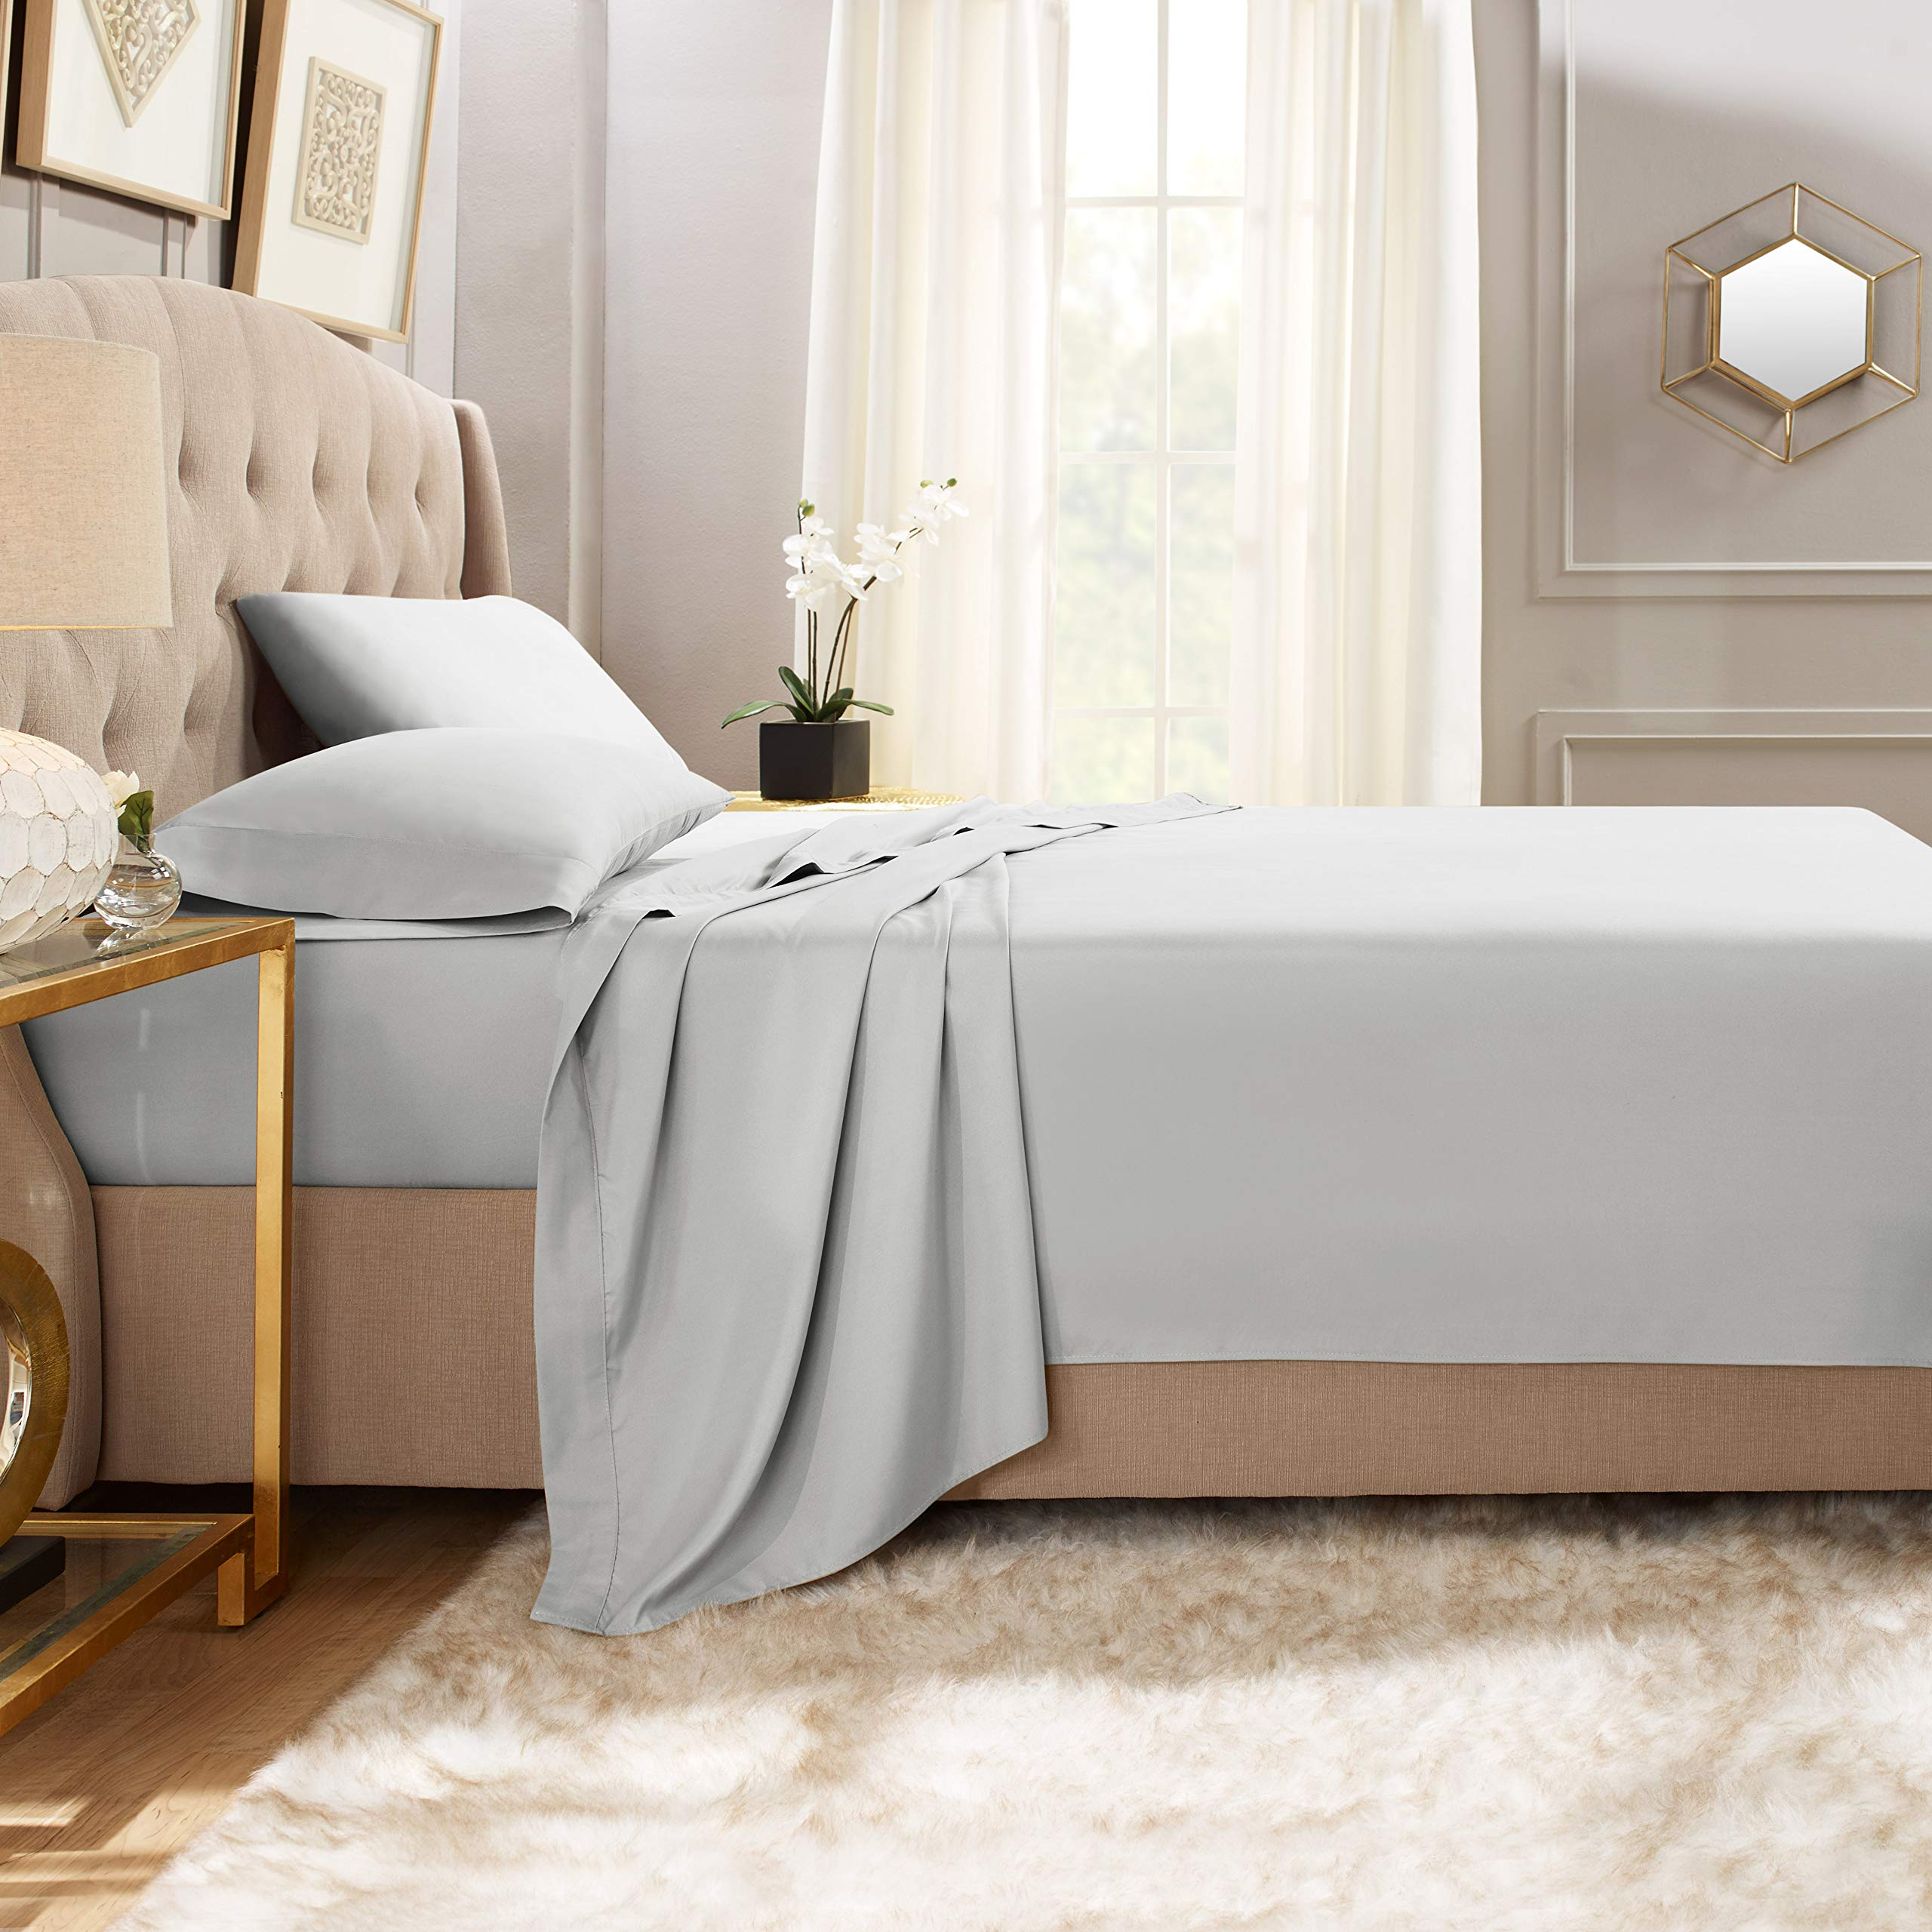 """Empyrean Bedding Premium Flat Sheets – 2-Pack """"110 GSM"""" Top Bed Sheets Double Brushed Microfiber Thick and Comfortable Flat Sheets Set, Luxurious & Soft Hotel Hypoallergenic, Twin, Silver Light Gray"""